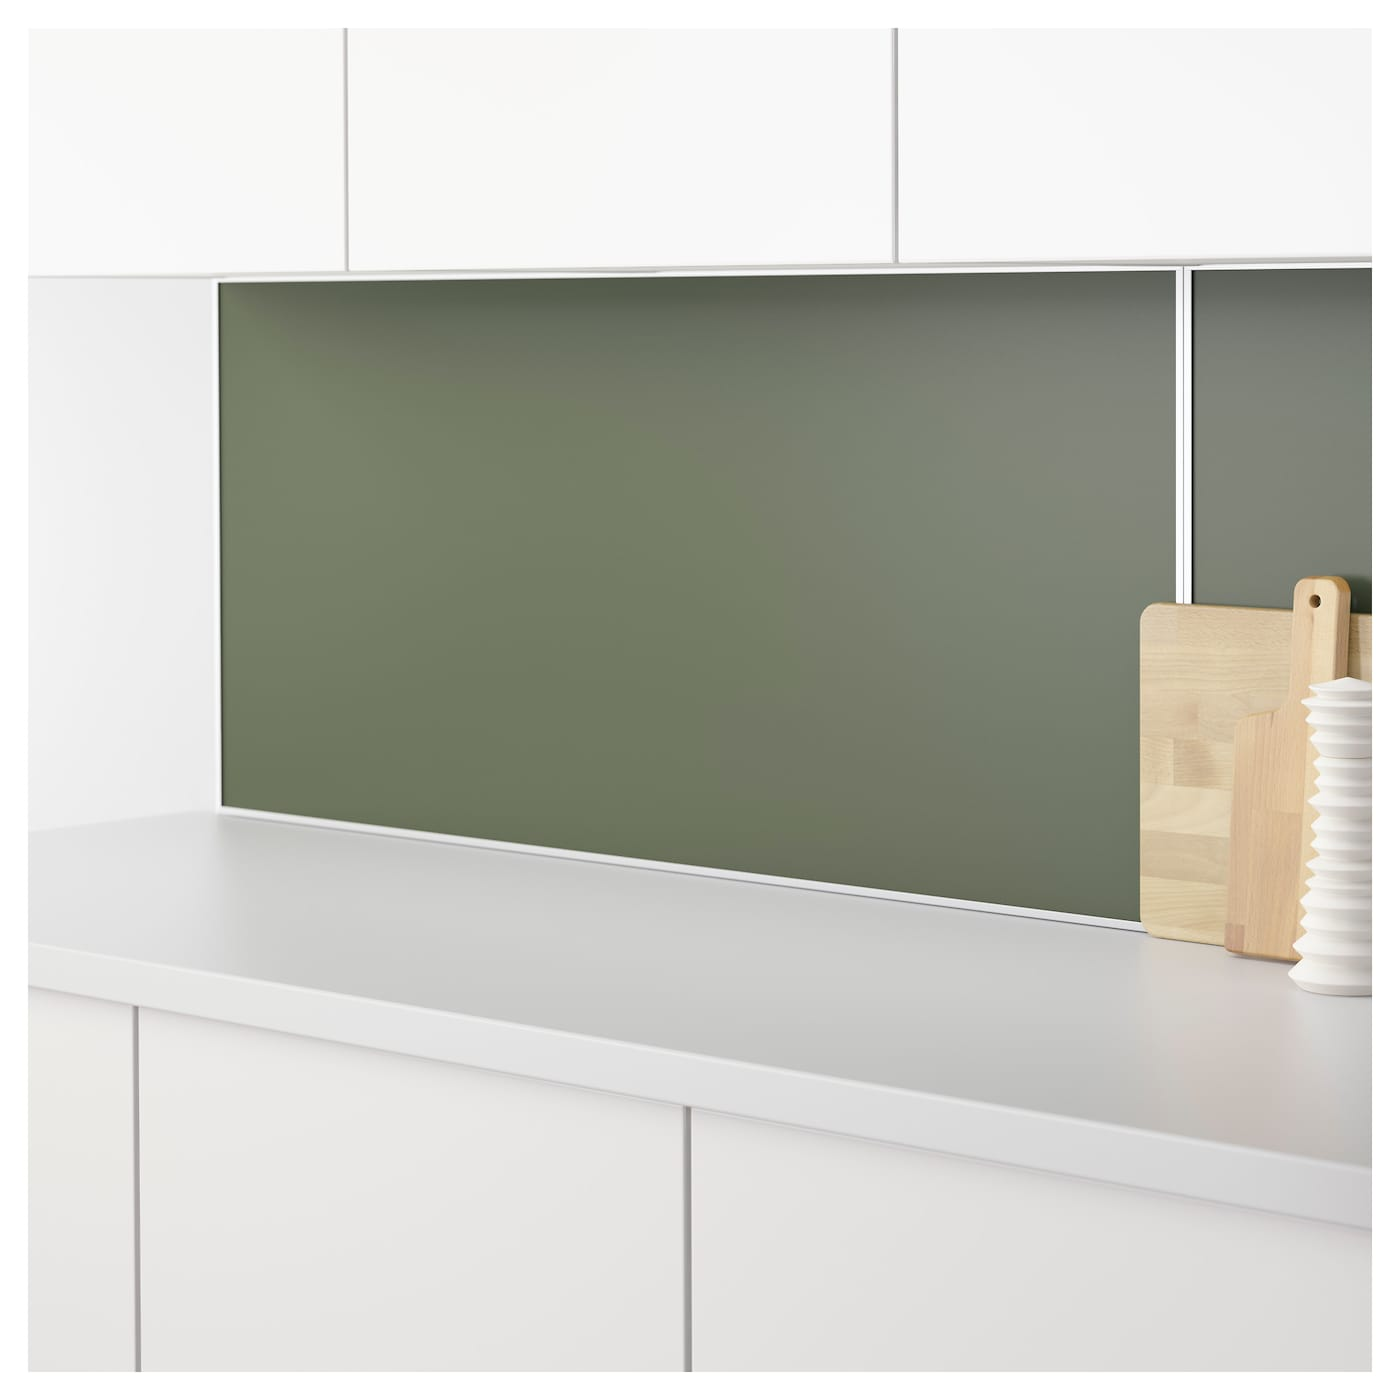 lysekil wall panel double sided white green grey 120x55 cm ikea. Black Bedroom Furniture Sets. Home Design Ideas